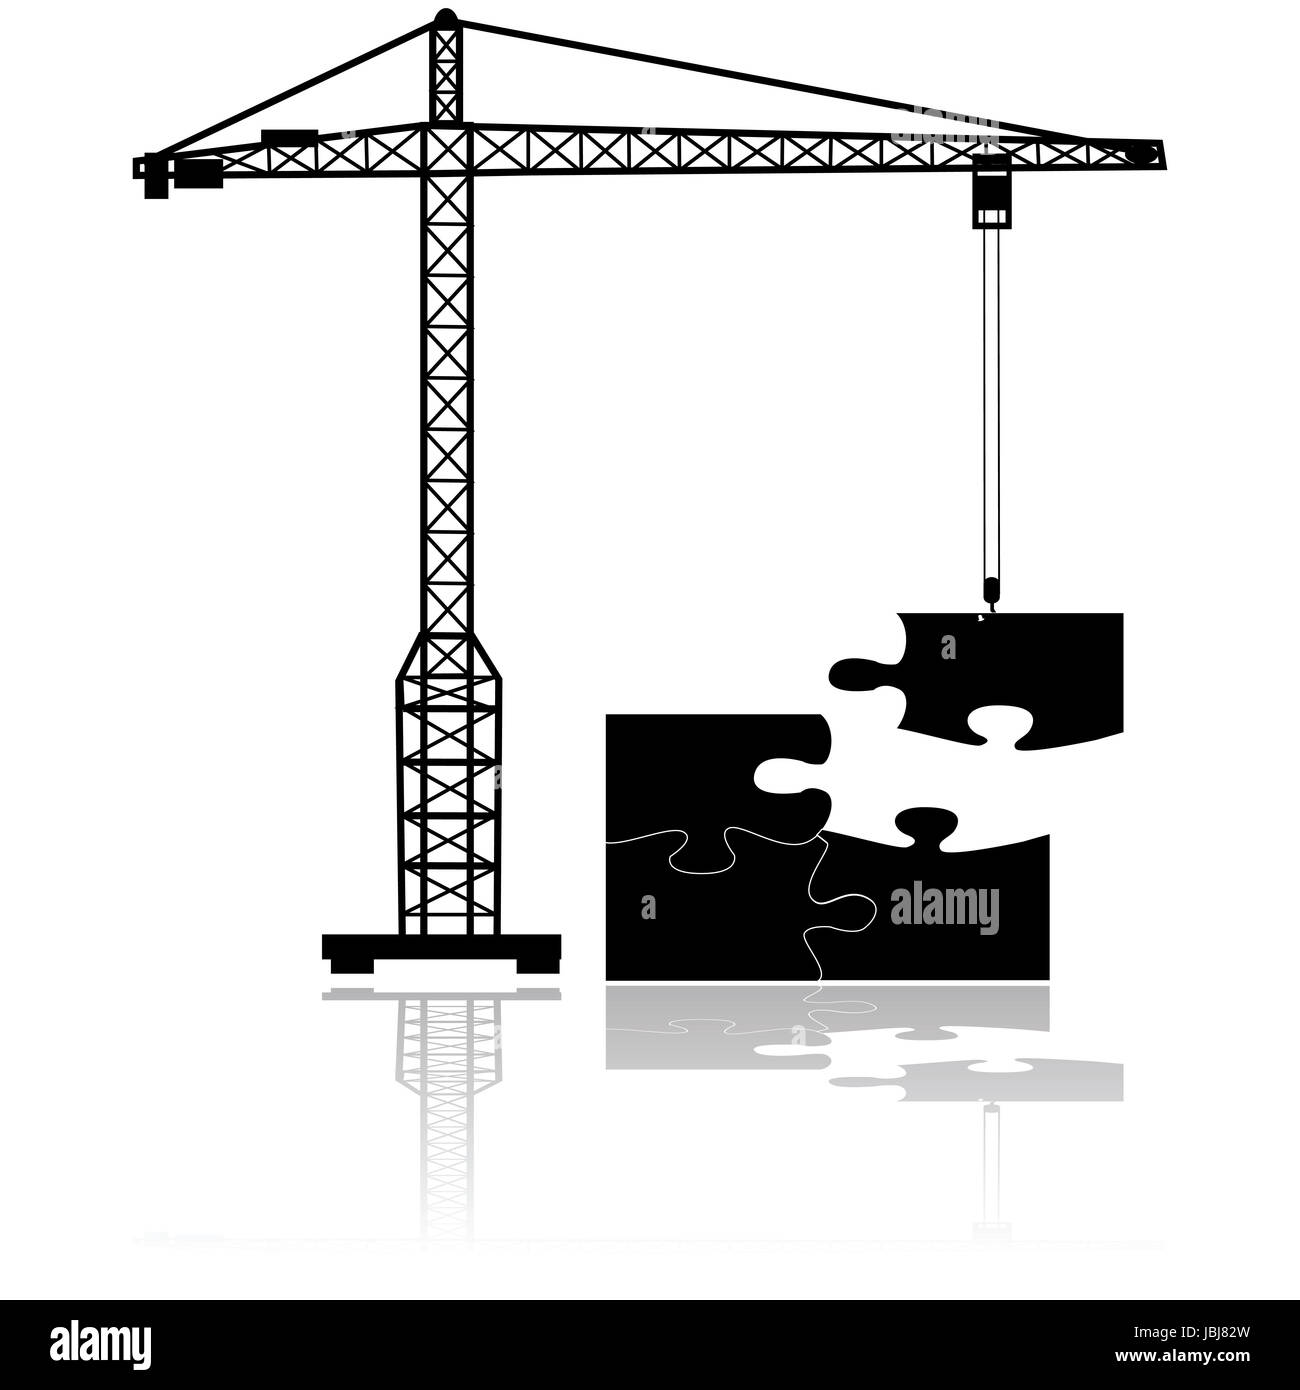 Concept illustration showing a crane moving the final missing piece to complete a puzzle - Stock Image